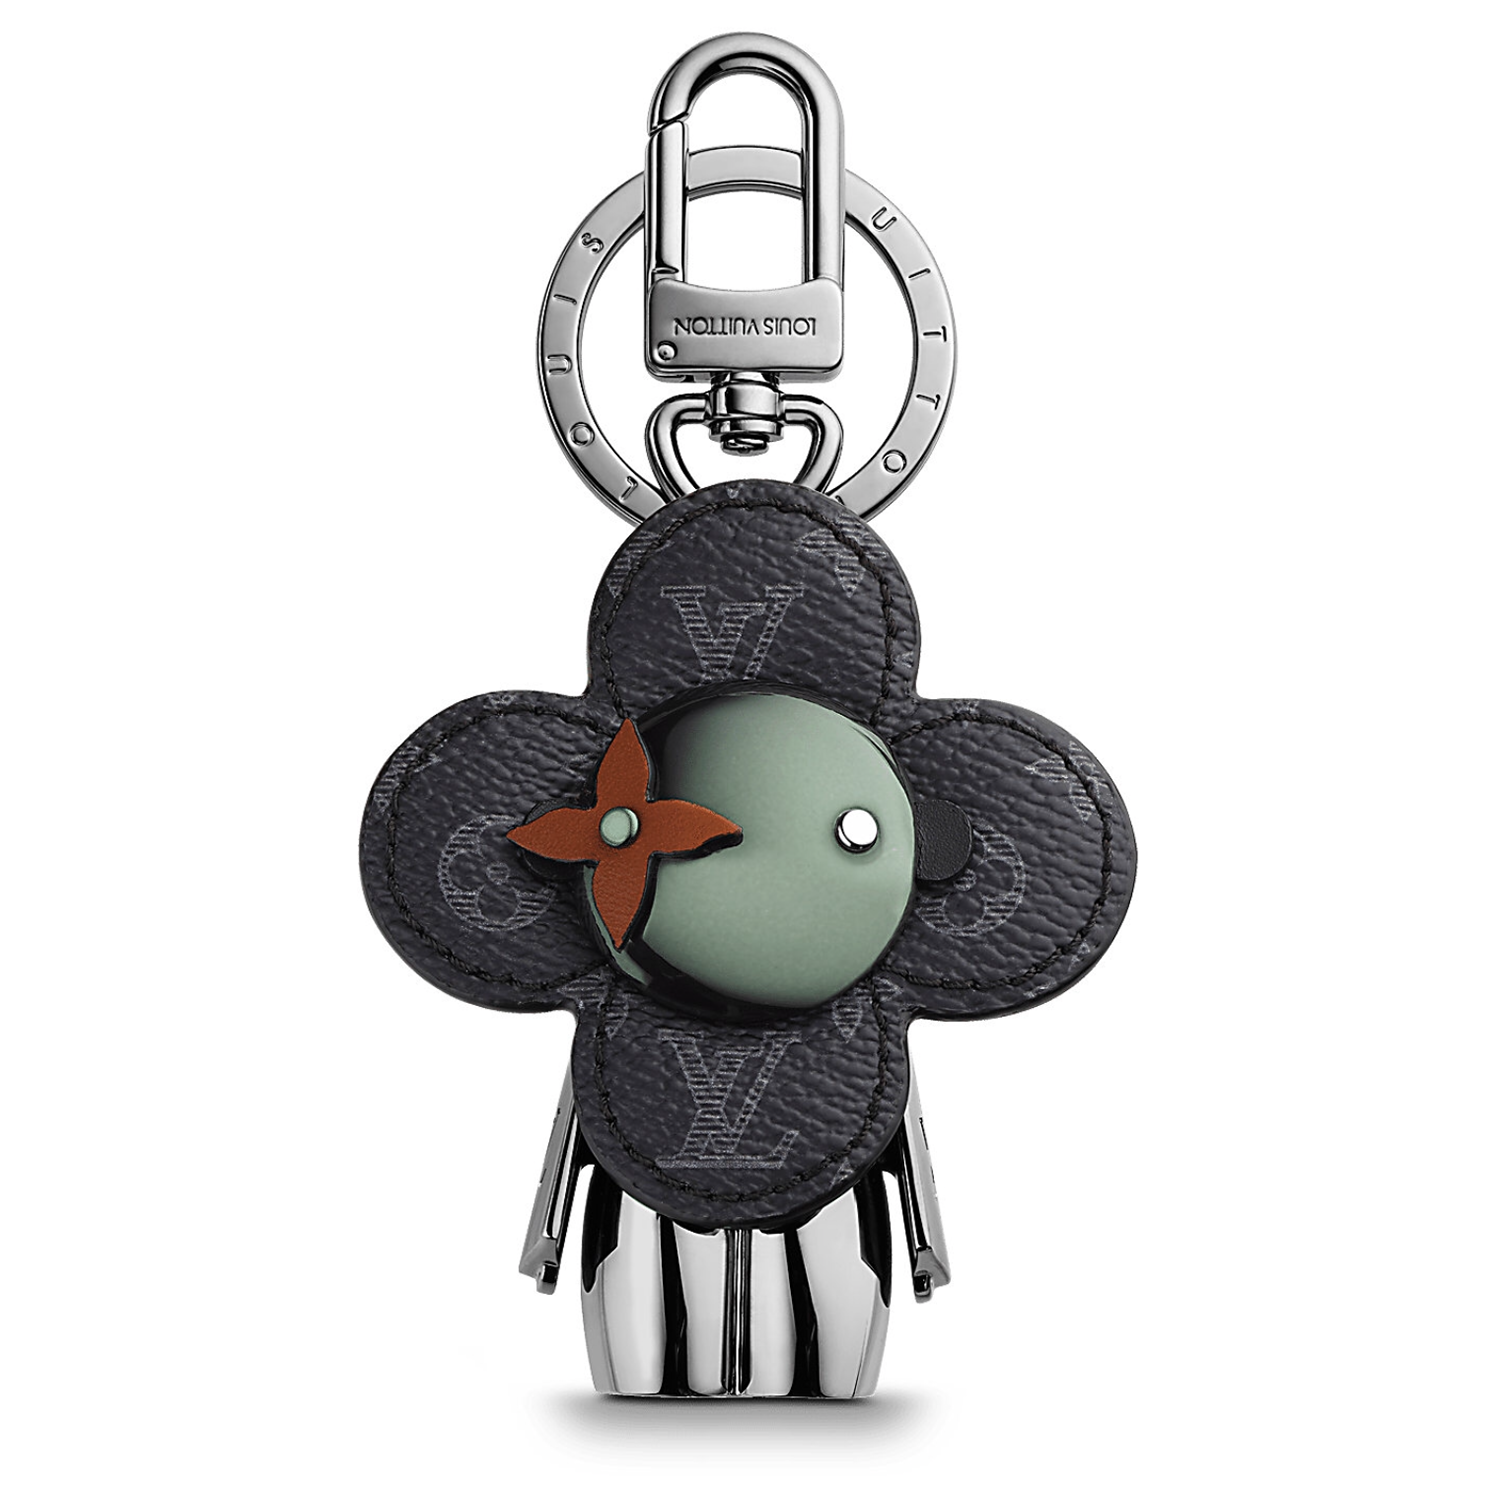 VIVIENNE CHARM - €495 $730MP1991MONOGRAM INK BLACK